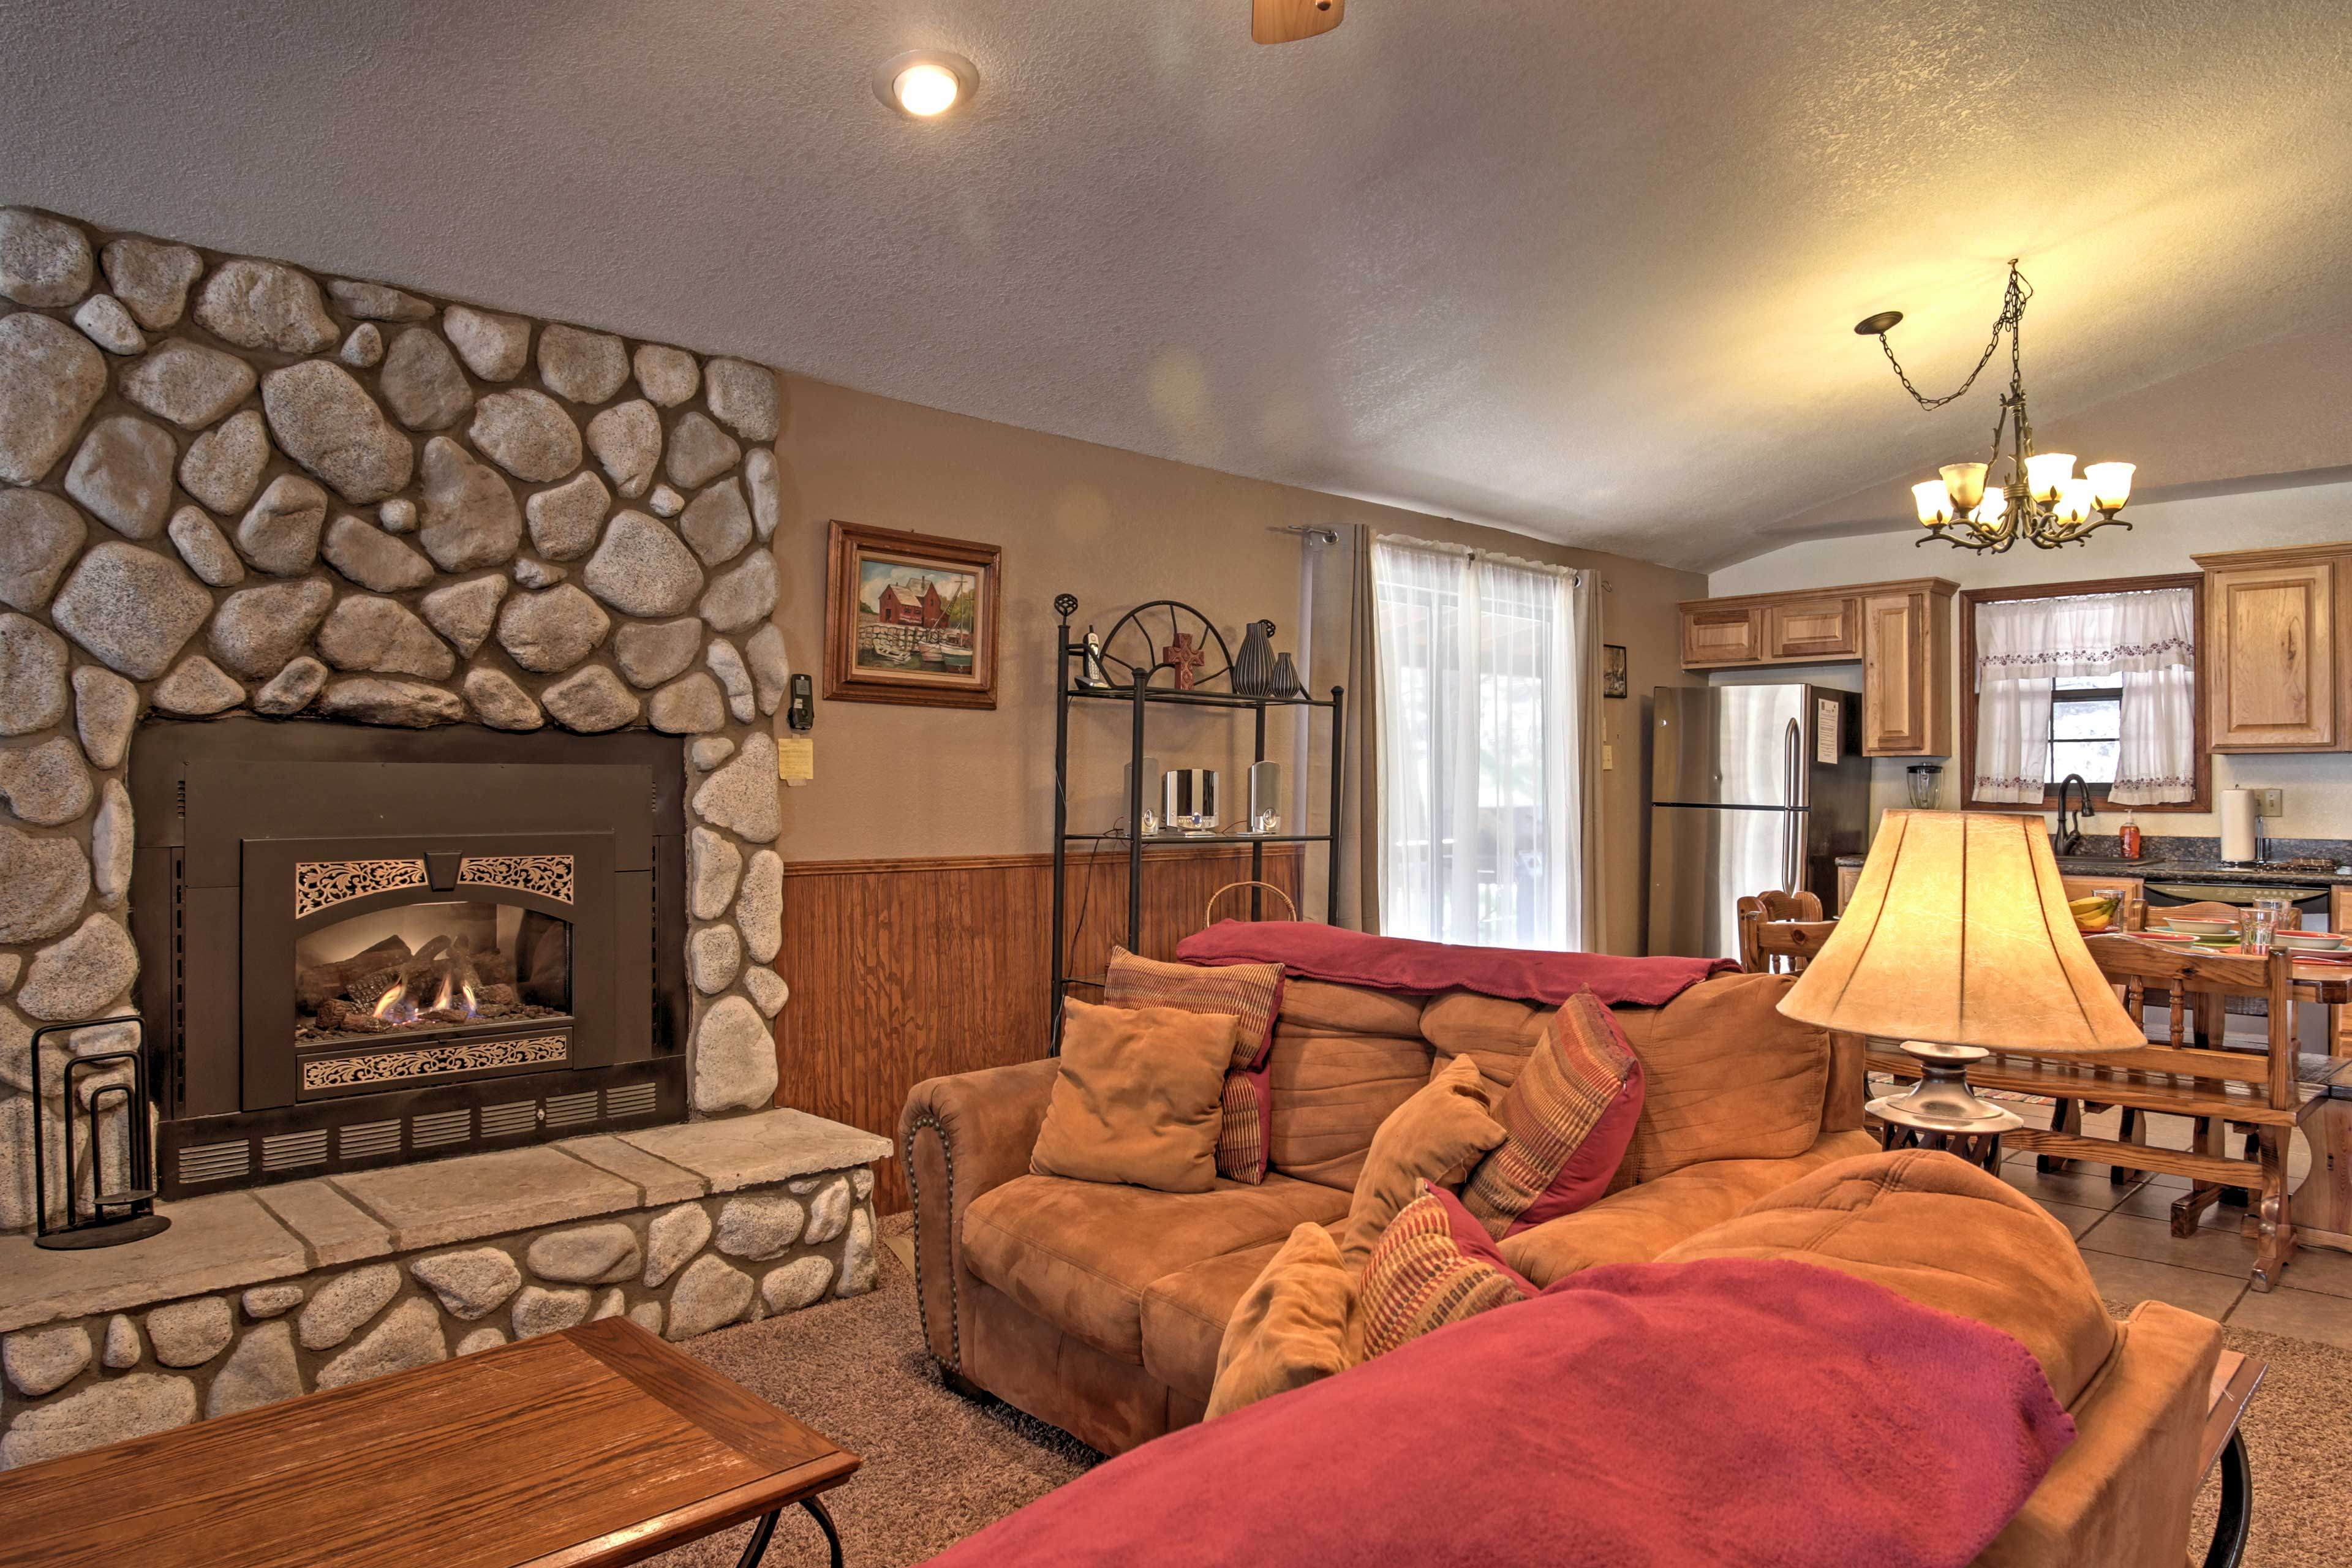 This exposed stone wall fireplace serves as the perfect centerpiece to this quaint home.